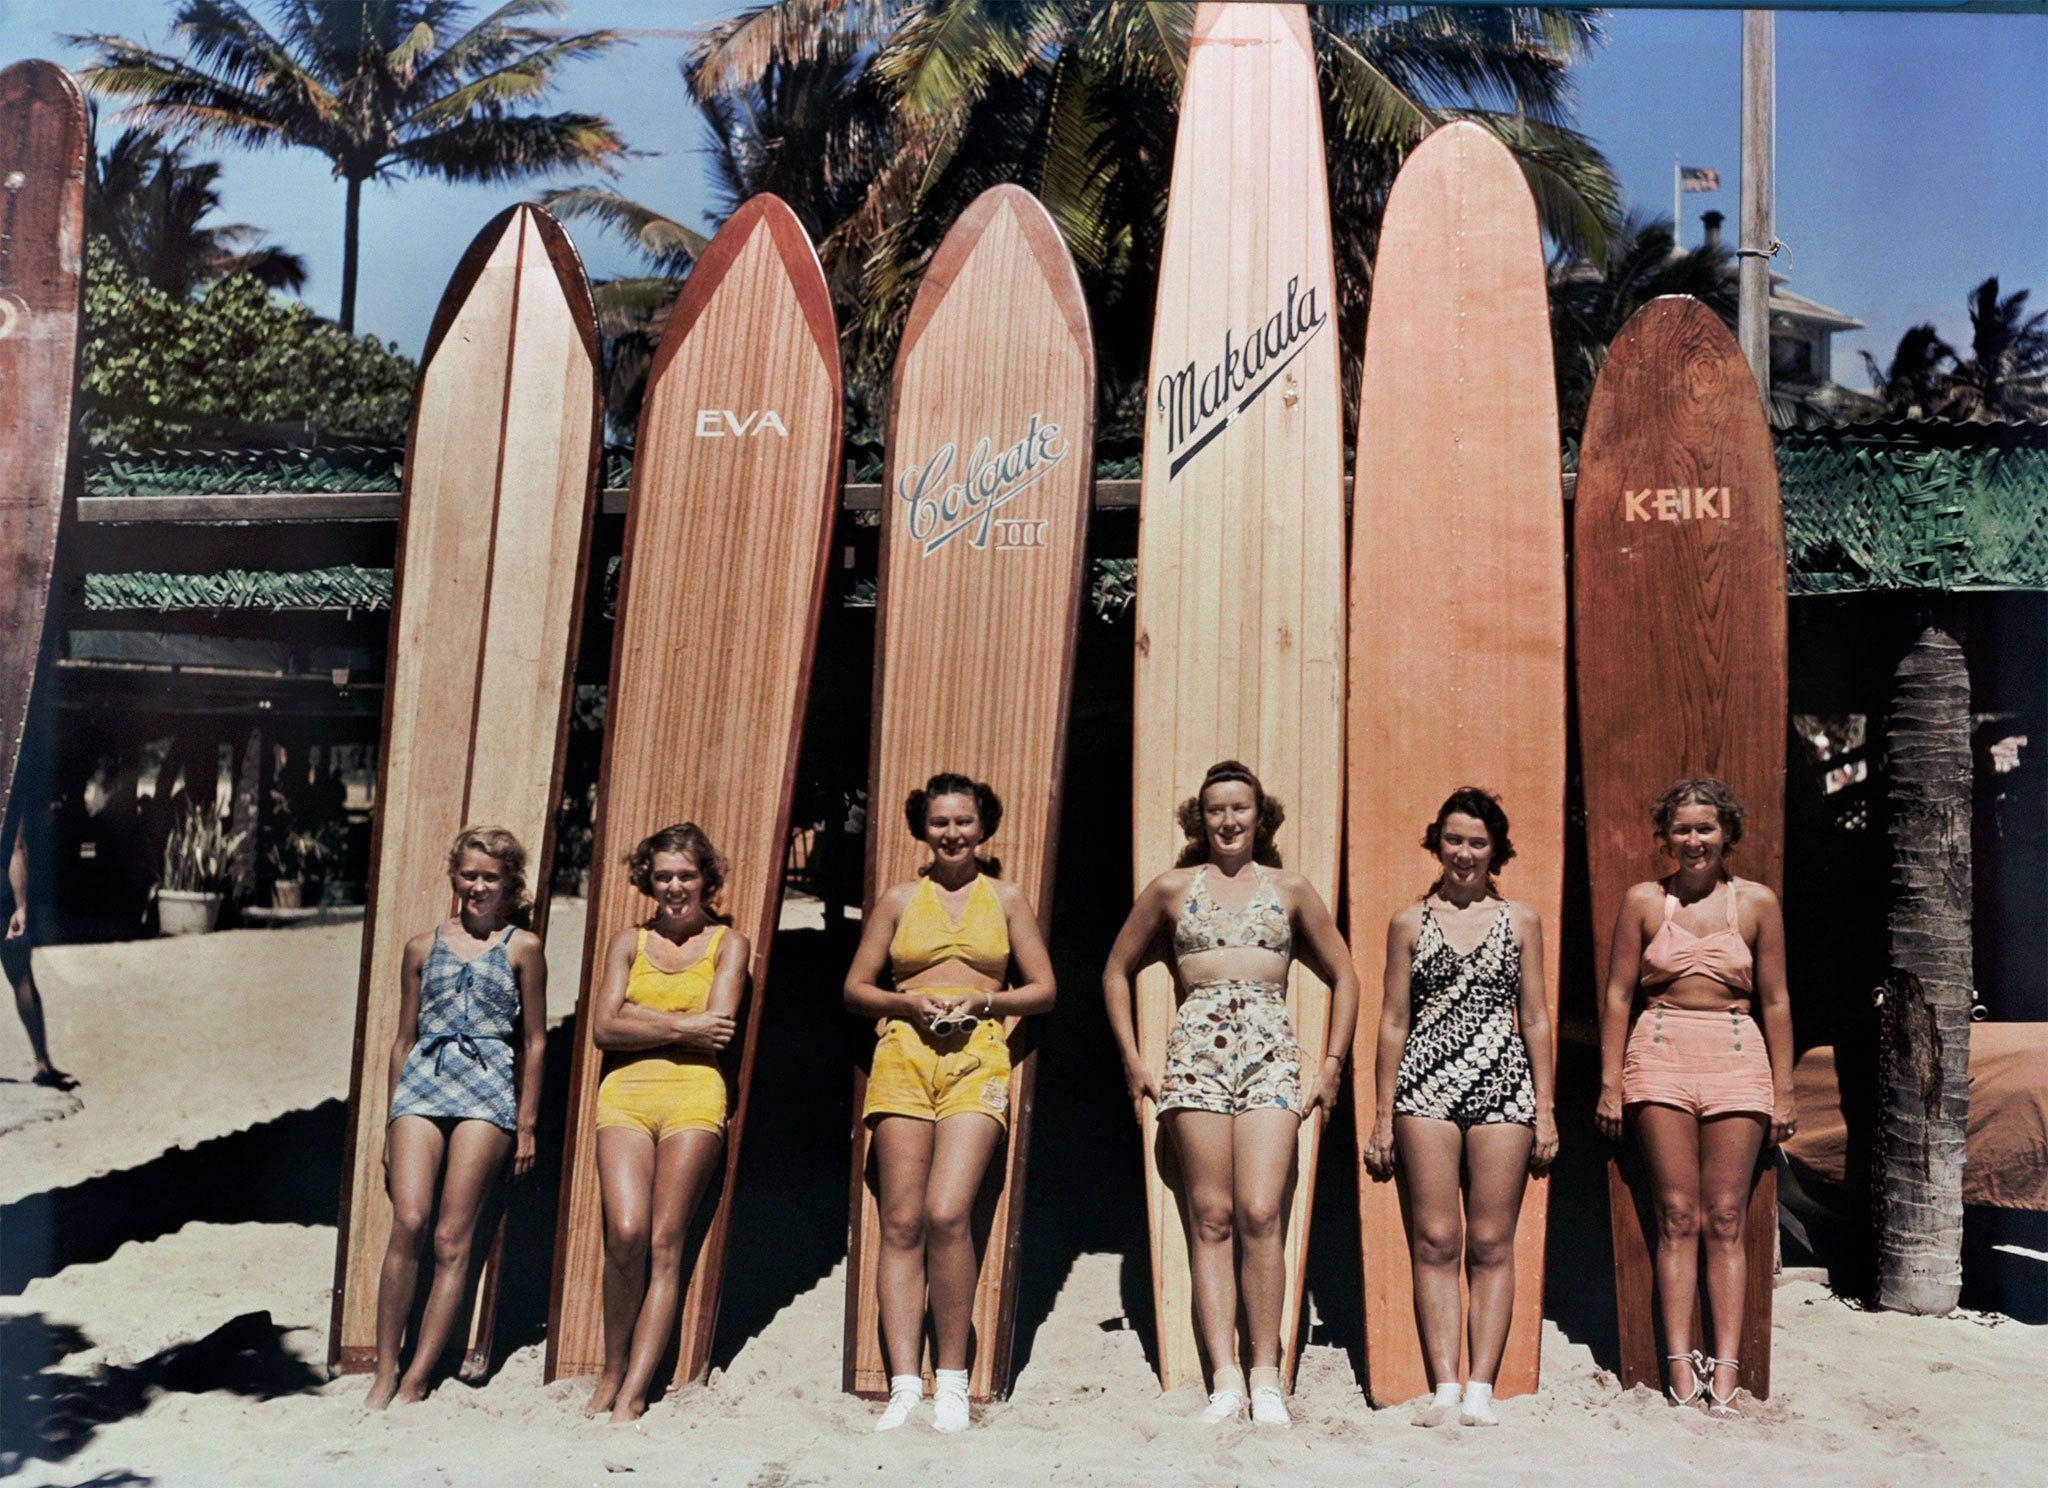 Women pose in front of surfboards on Waikiki Beach in Honolulu, Hawaii, in a photo from a 1938 issue of <i>National Geographic</i>. Their bare beach legs are very contemporary—a couple of decades prior, they might have been wearing stockings.